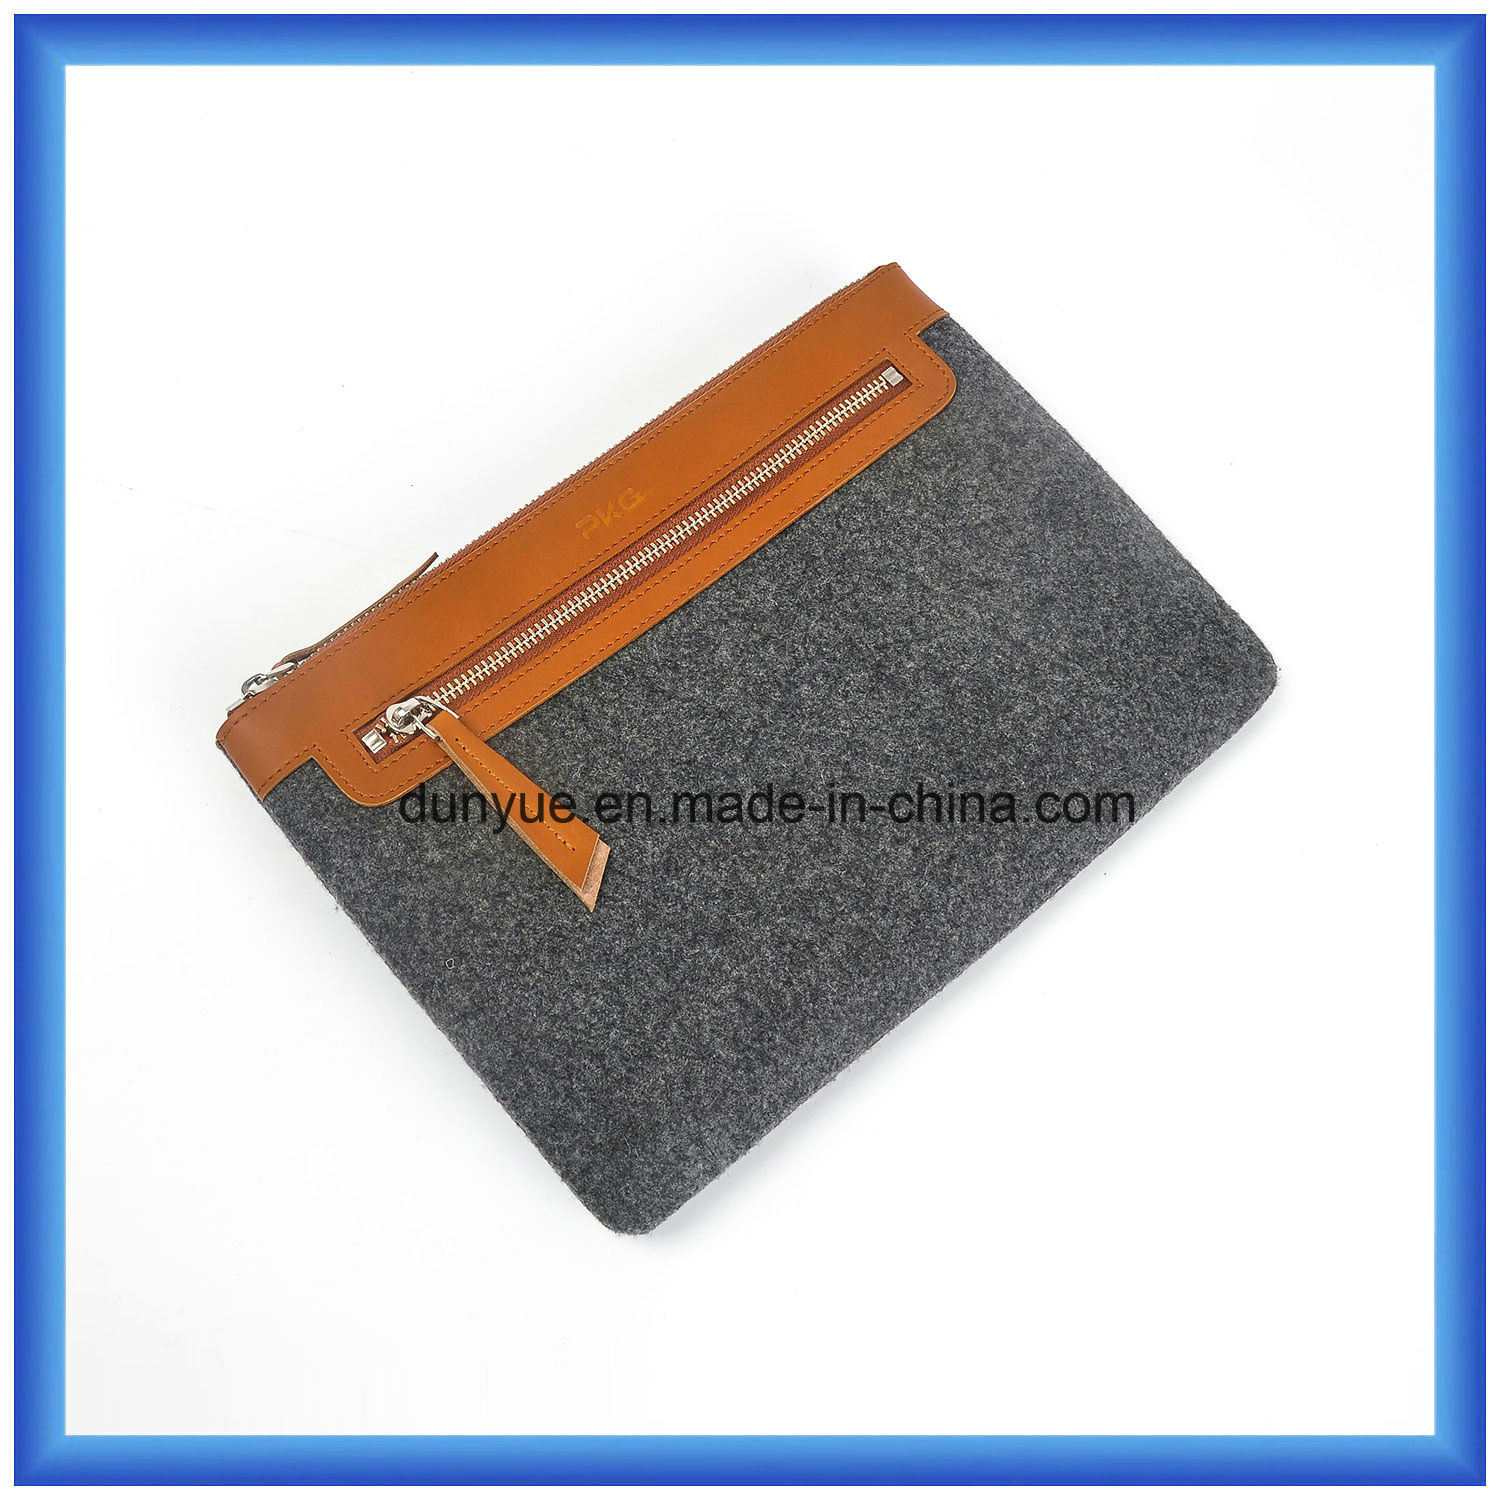 Young Design Customized Wool Felt Briefcase Bag, Hot Promotion Hand Bags with PU Leather Handle